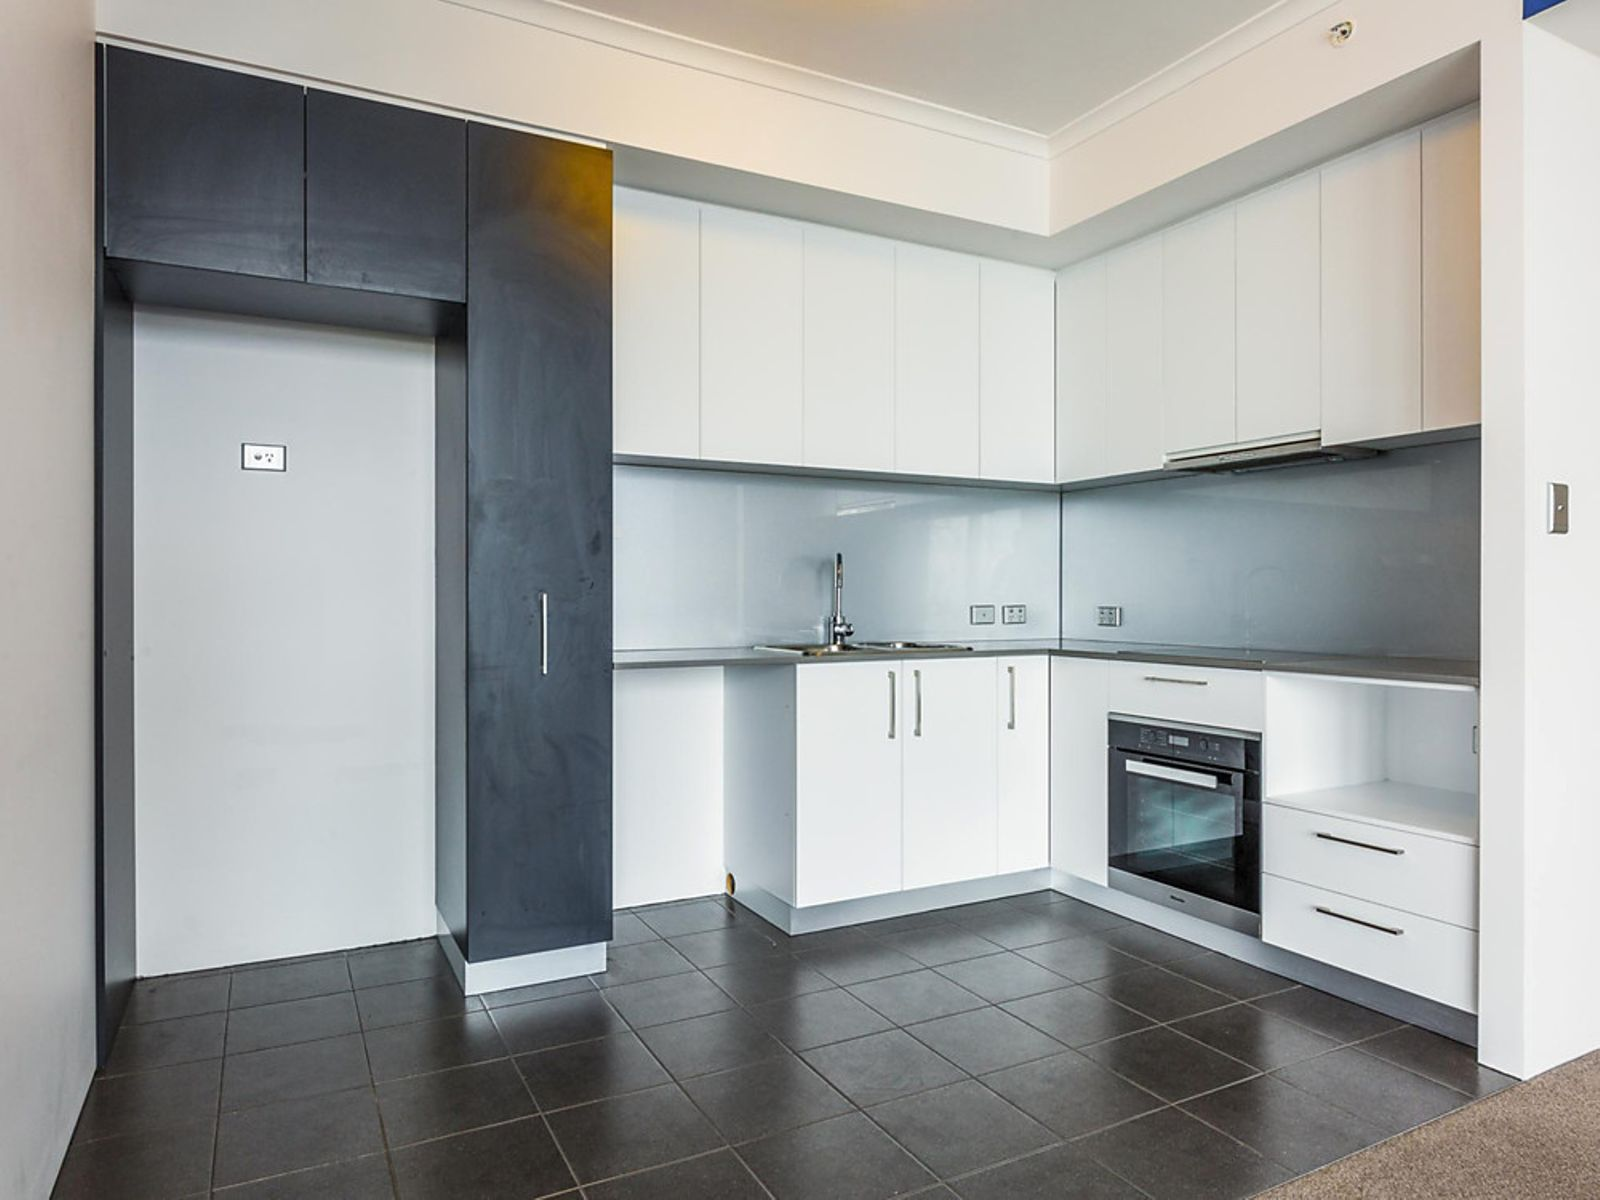 Houses for Sale Perth   105/15 Aberdeen Street, Perth, WA 6000